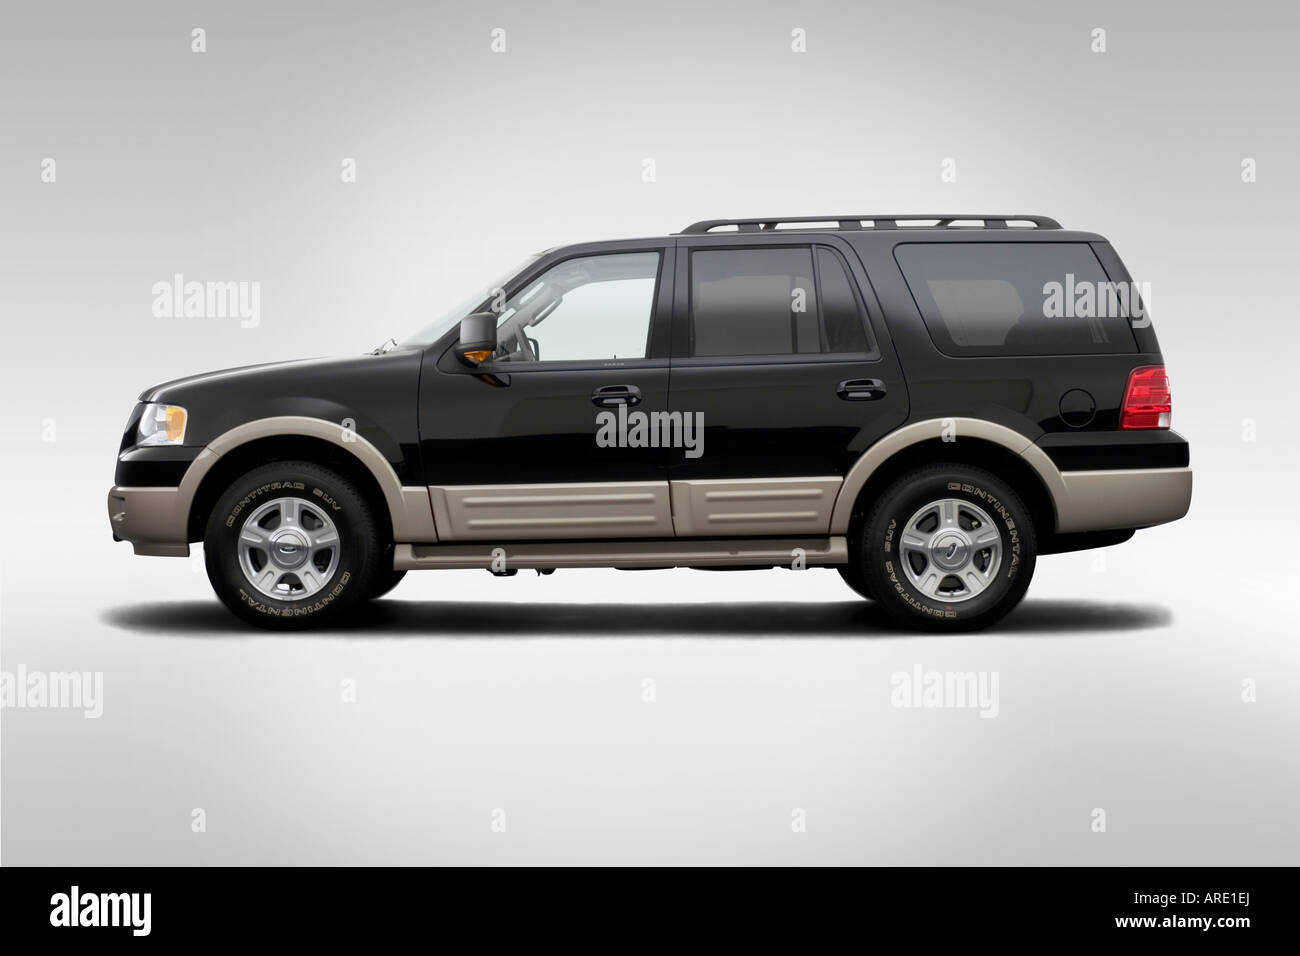 2006 ford expedition eddie bauer in black drivers side profile